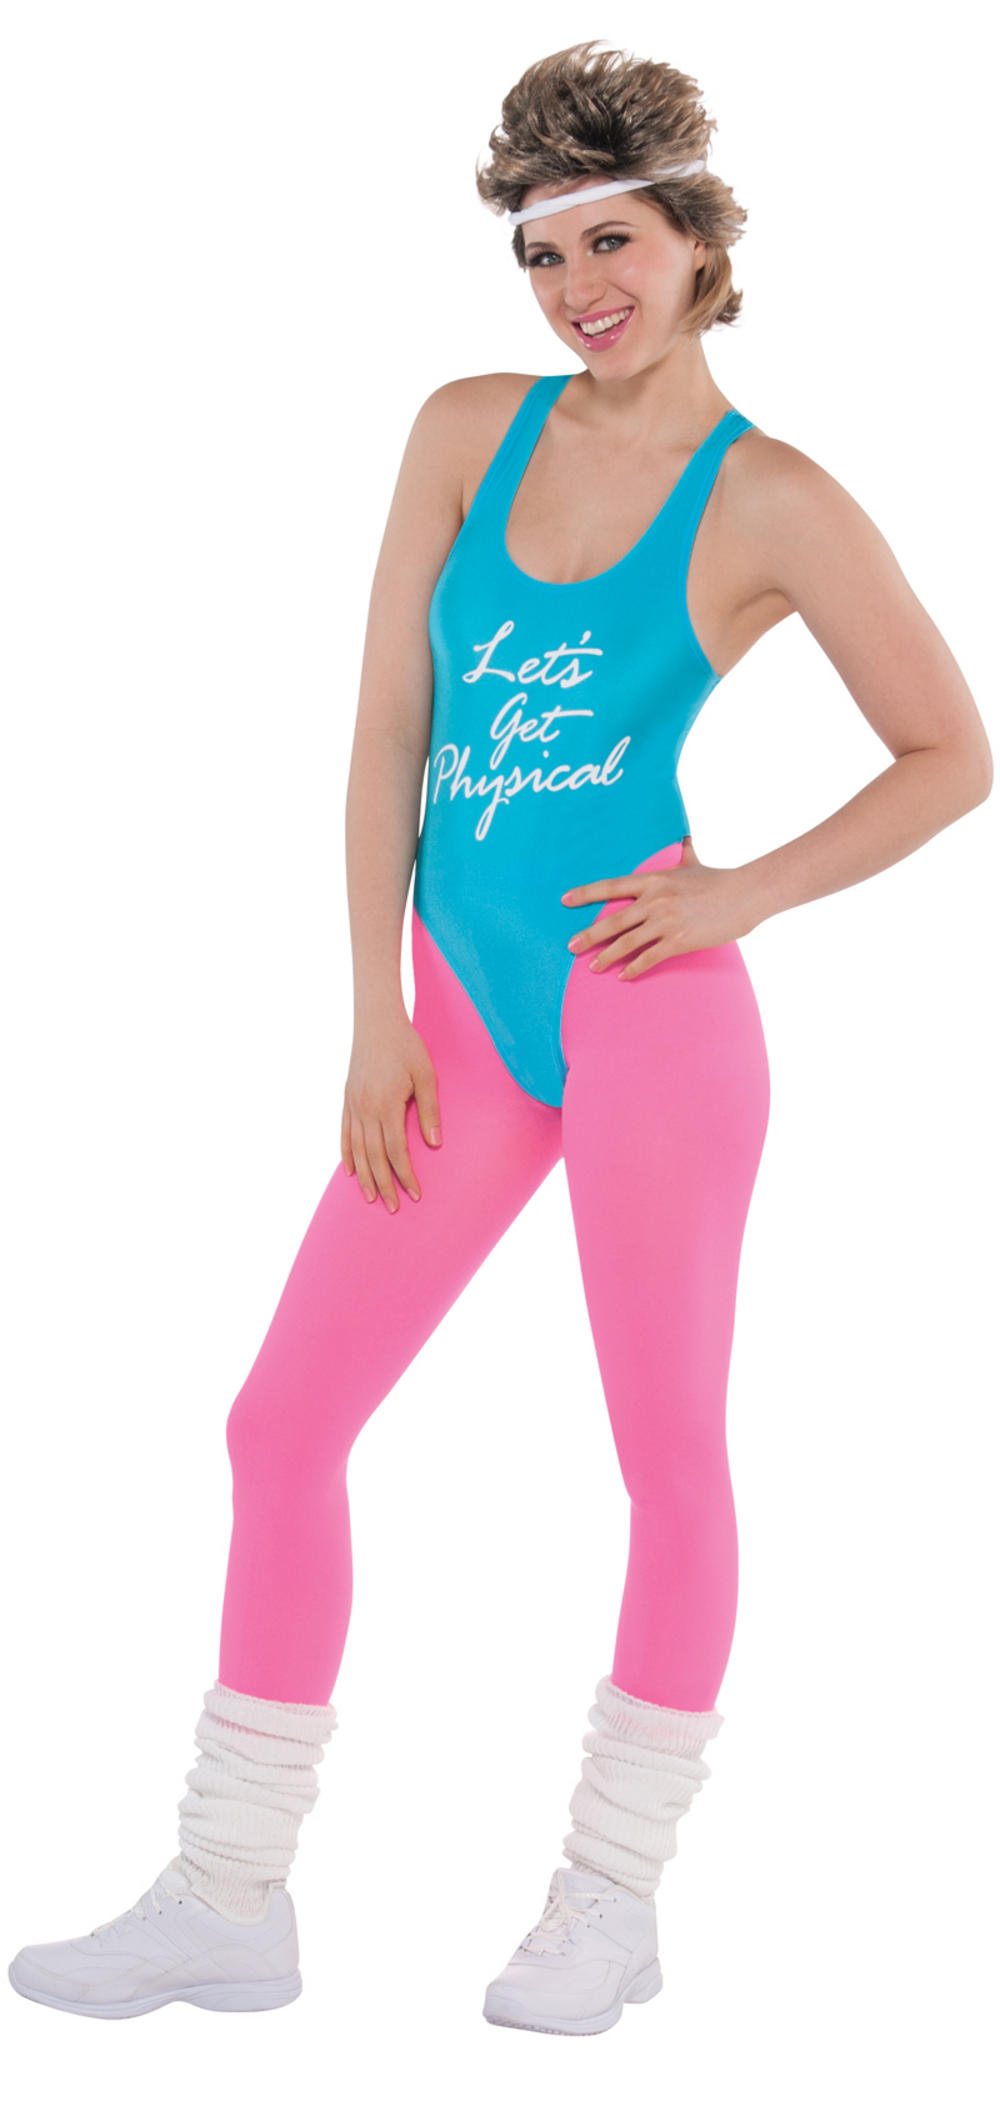 Getting Physical Ladies Costume